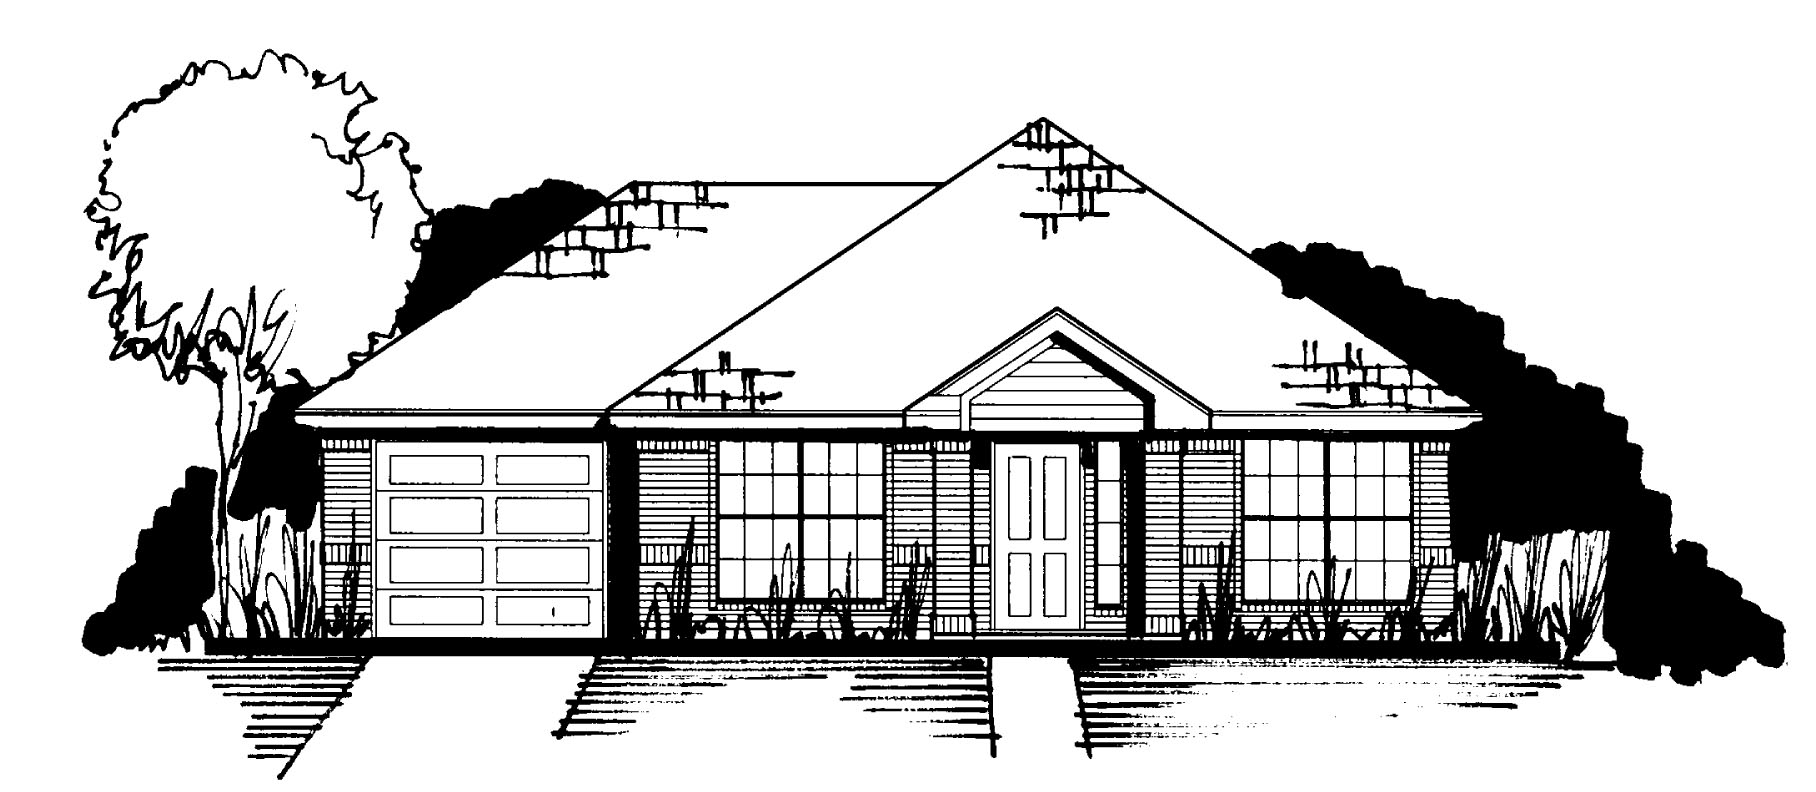 3500 sq ft house plans price 14 home plans 3500 sq ft house plans traditional style house plan 4 beds 3 5 baths 3500 sq ft plan 51